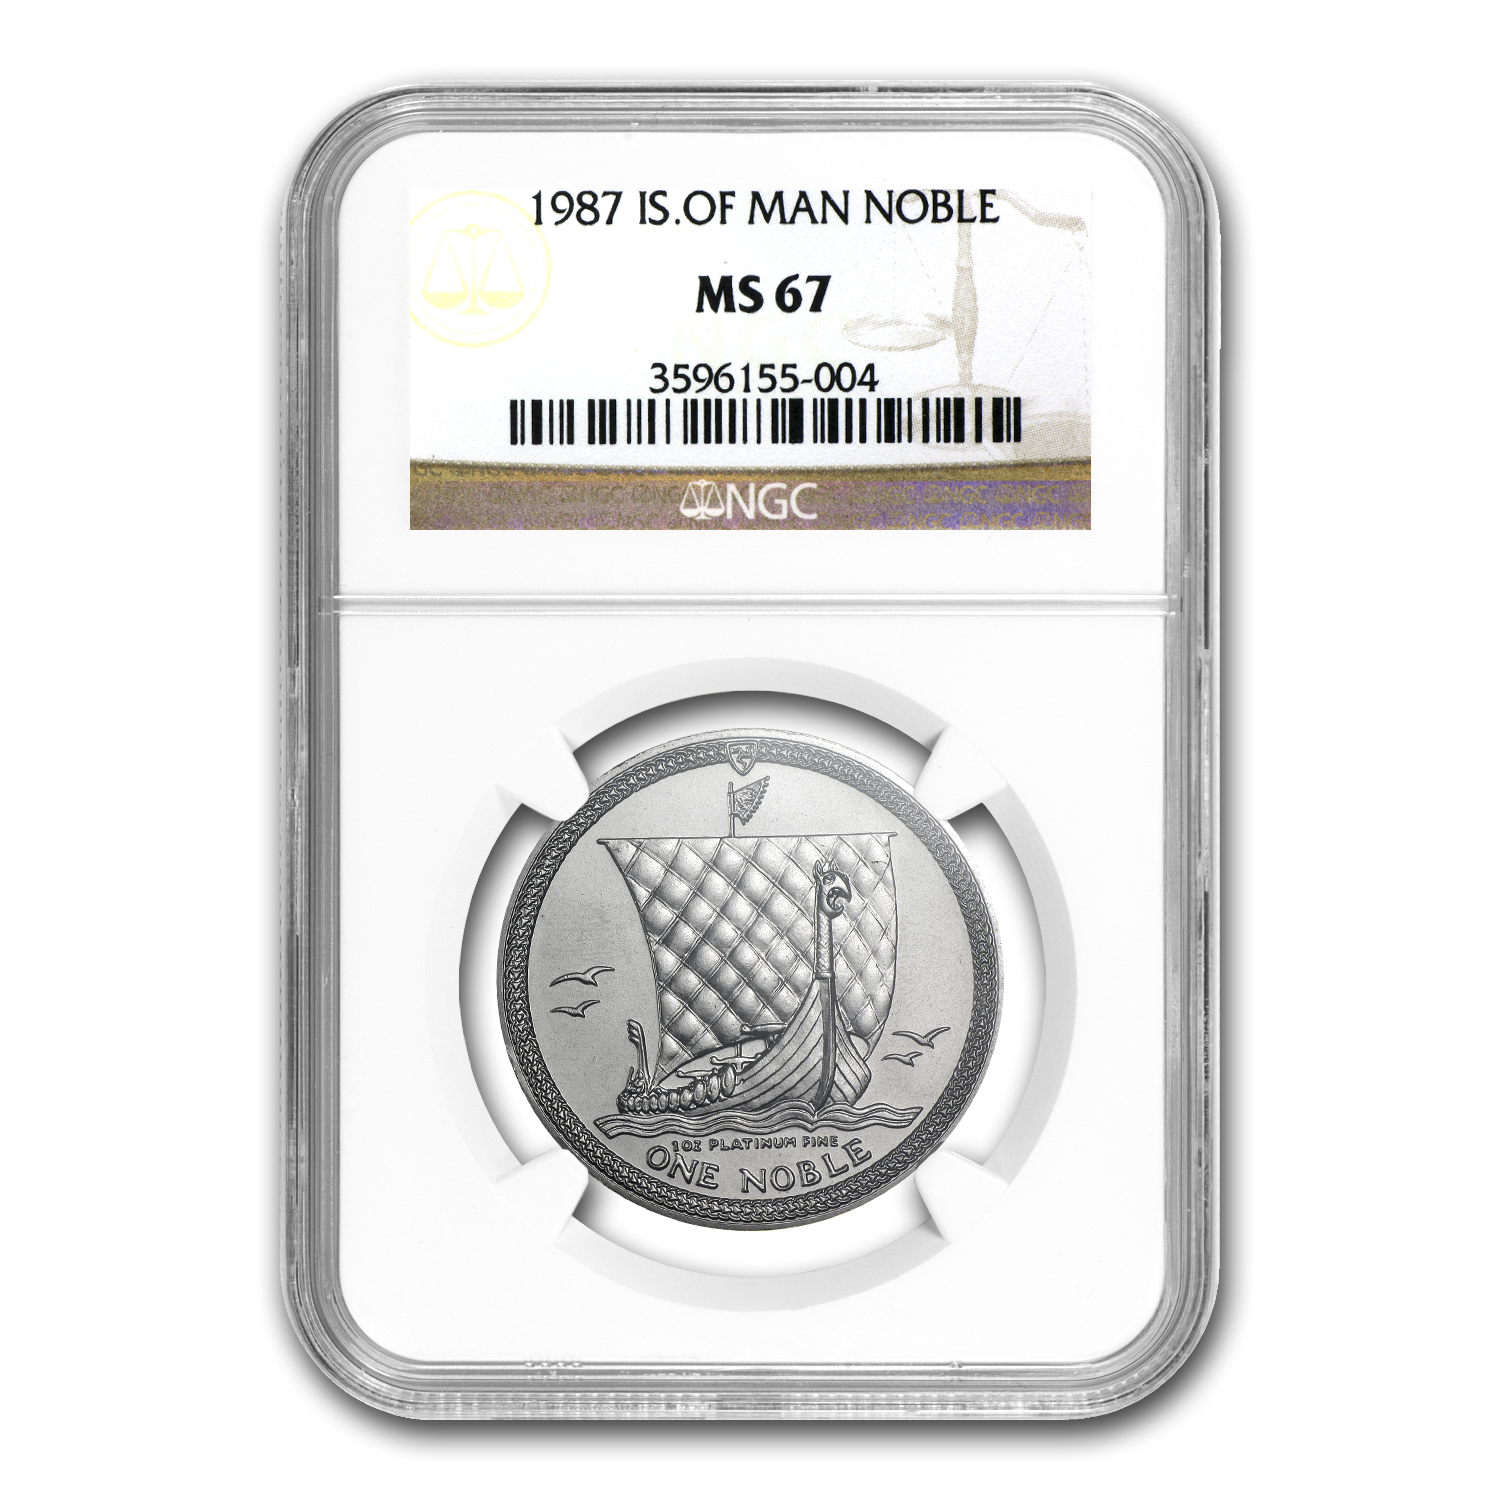 1987 1 oz Isle of Man Platinum Noble MS-67 NGC